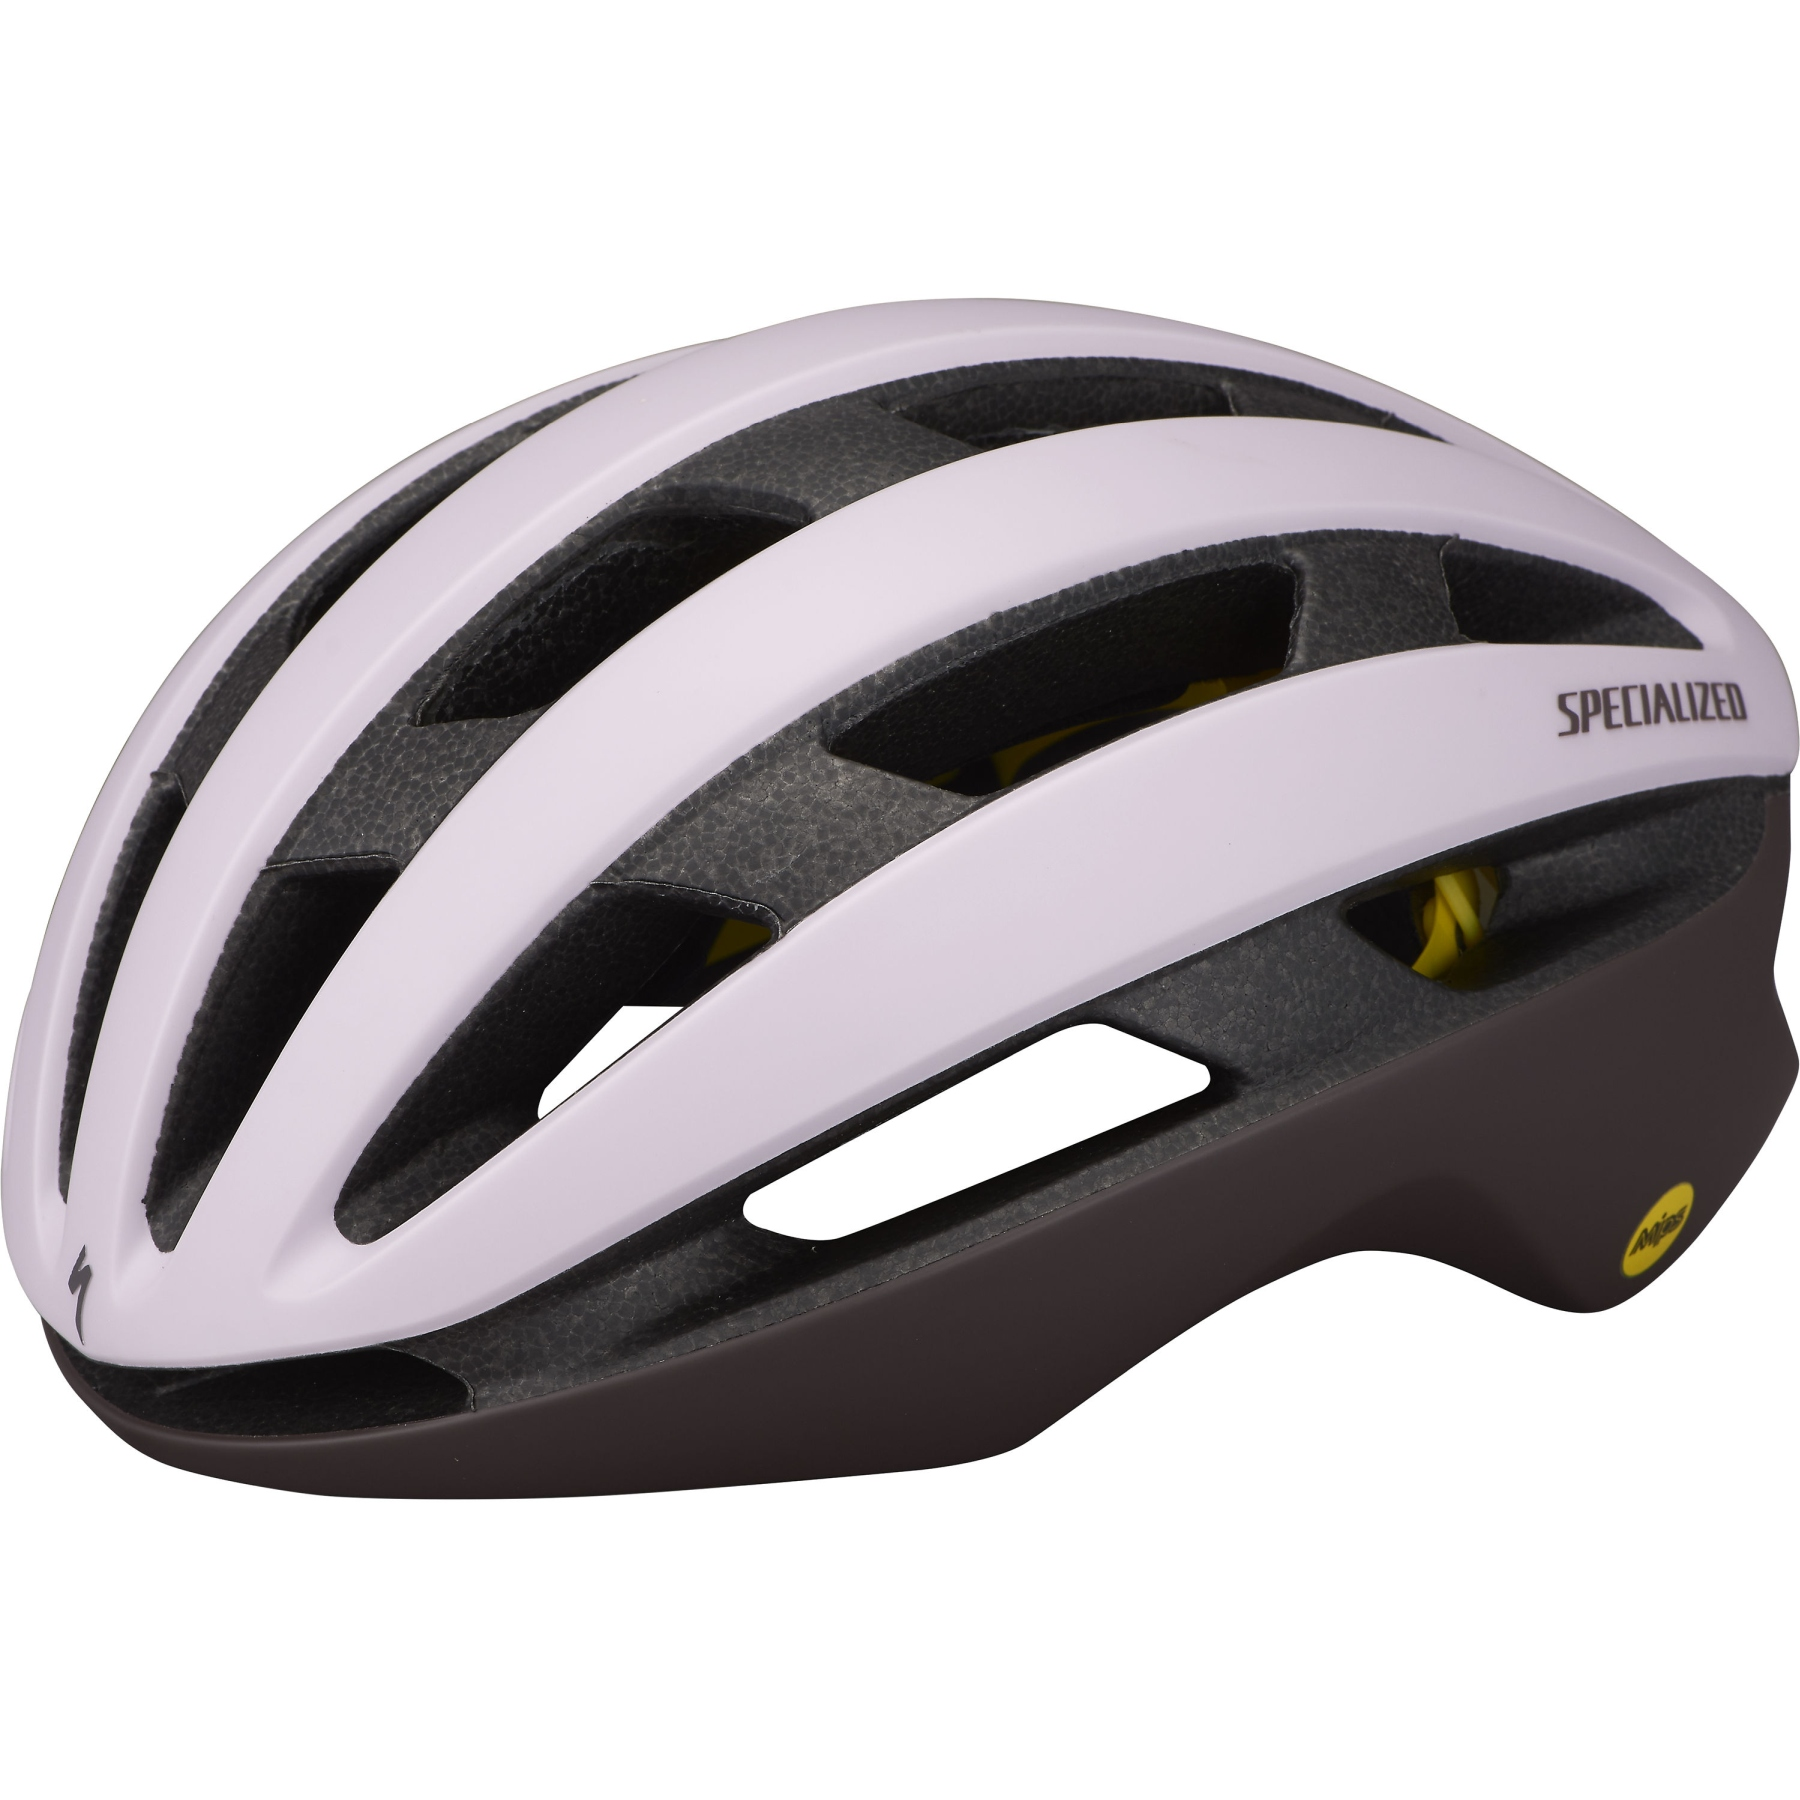 Specialized Airnet MIPS Helmet - Satin Cast Umber/Clay